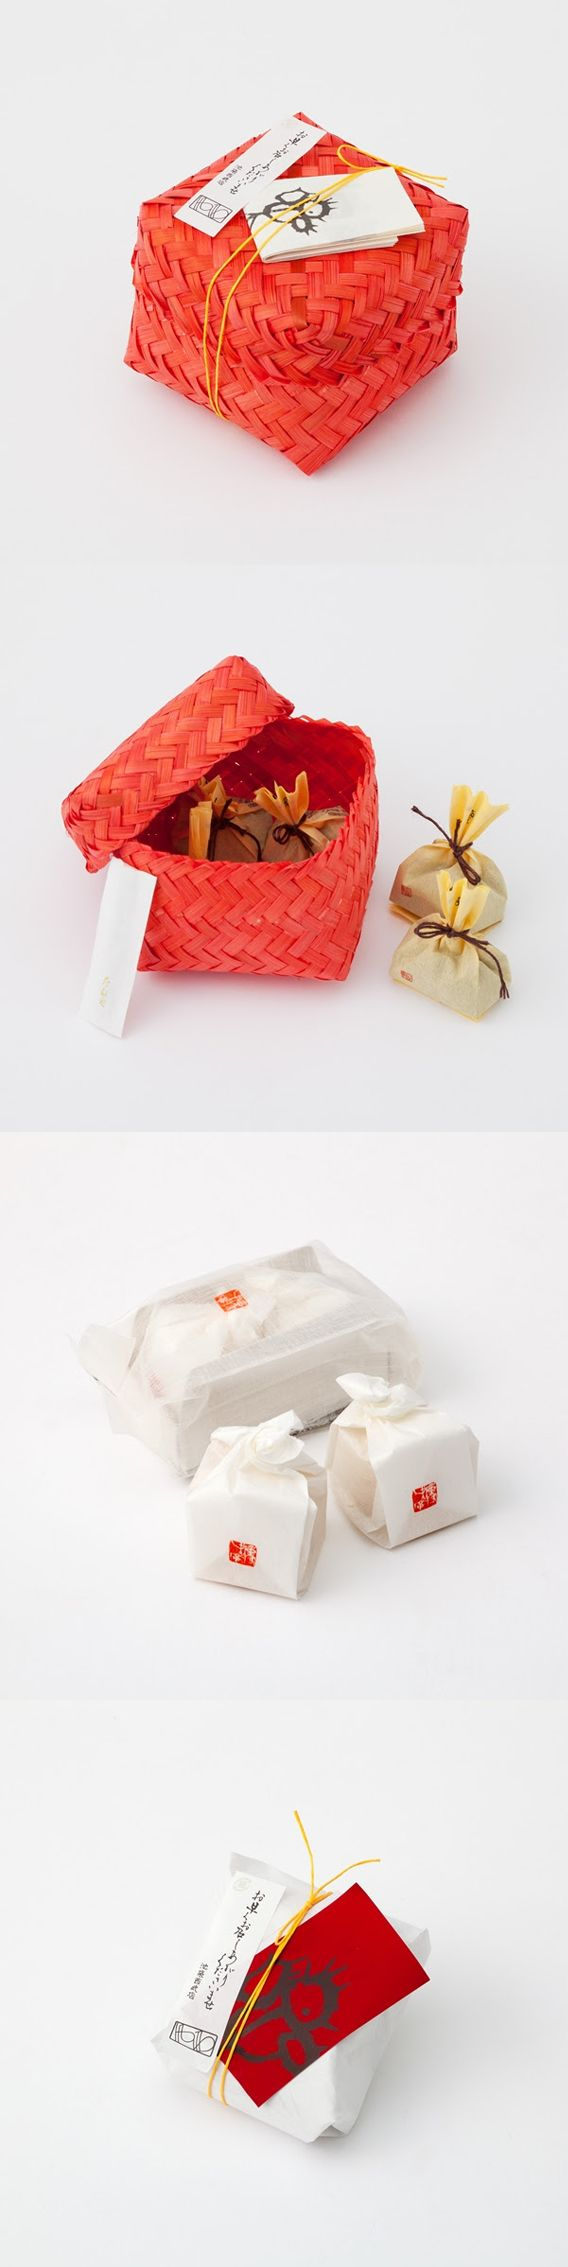 Unique Packaging Design on the Internet, Taneya Japanese Sweets Chestnuts #packagingdesign #packaging #design http://www.pinterest.com/aldenchong/design/